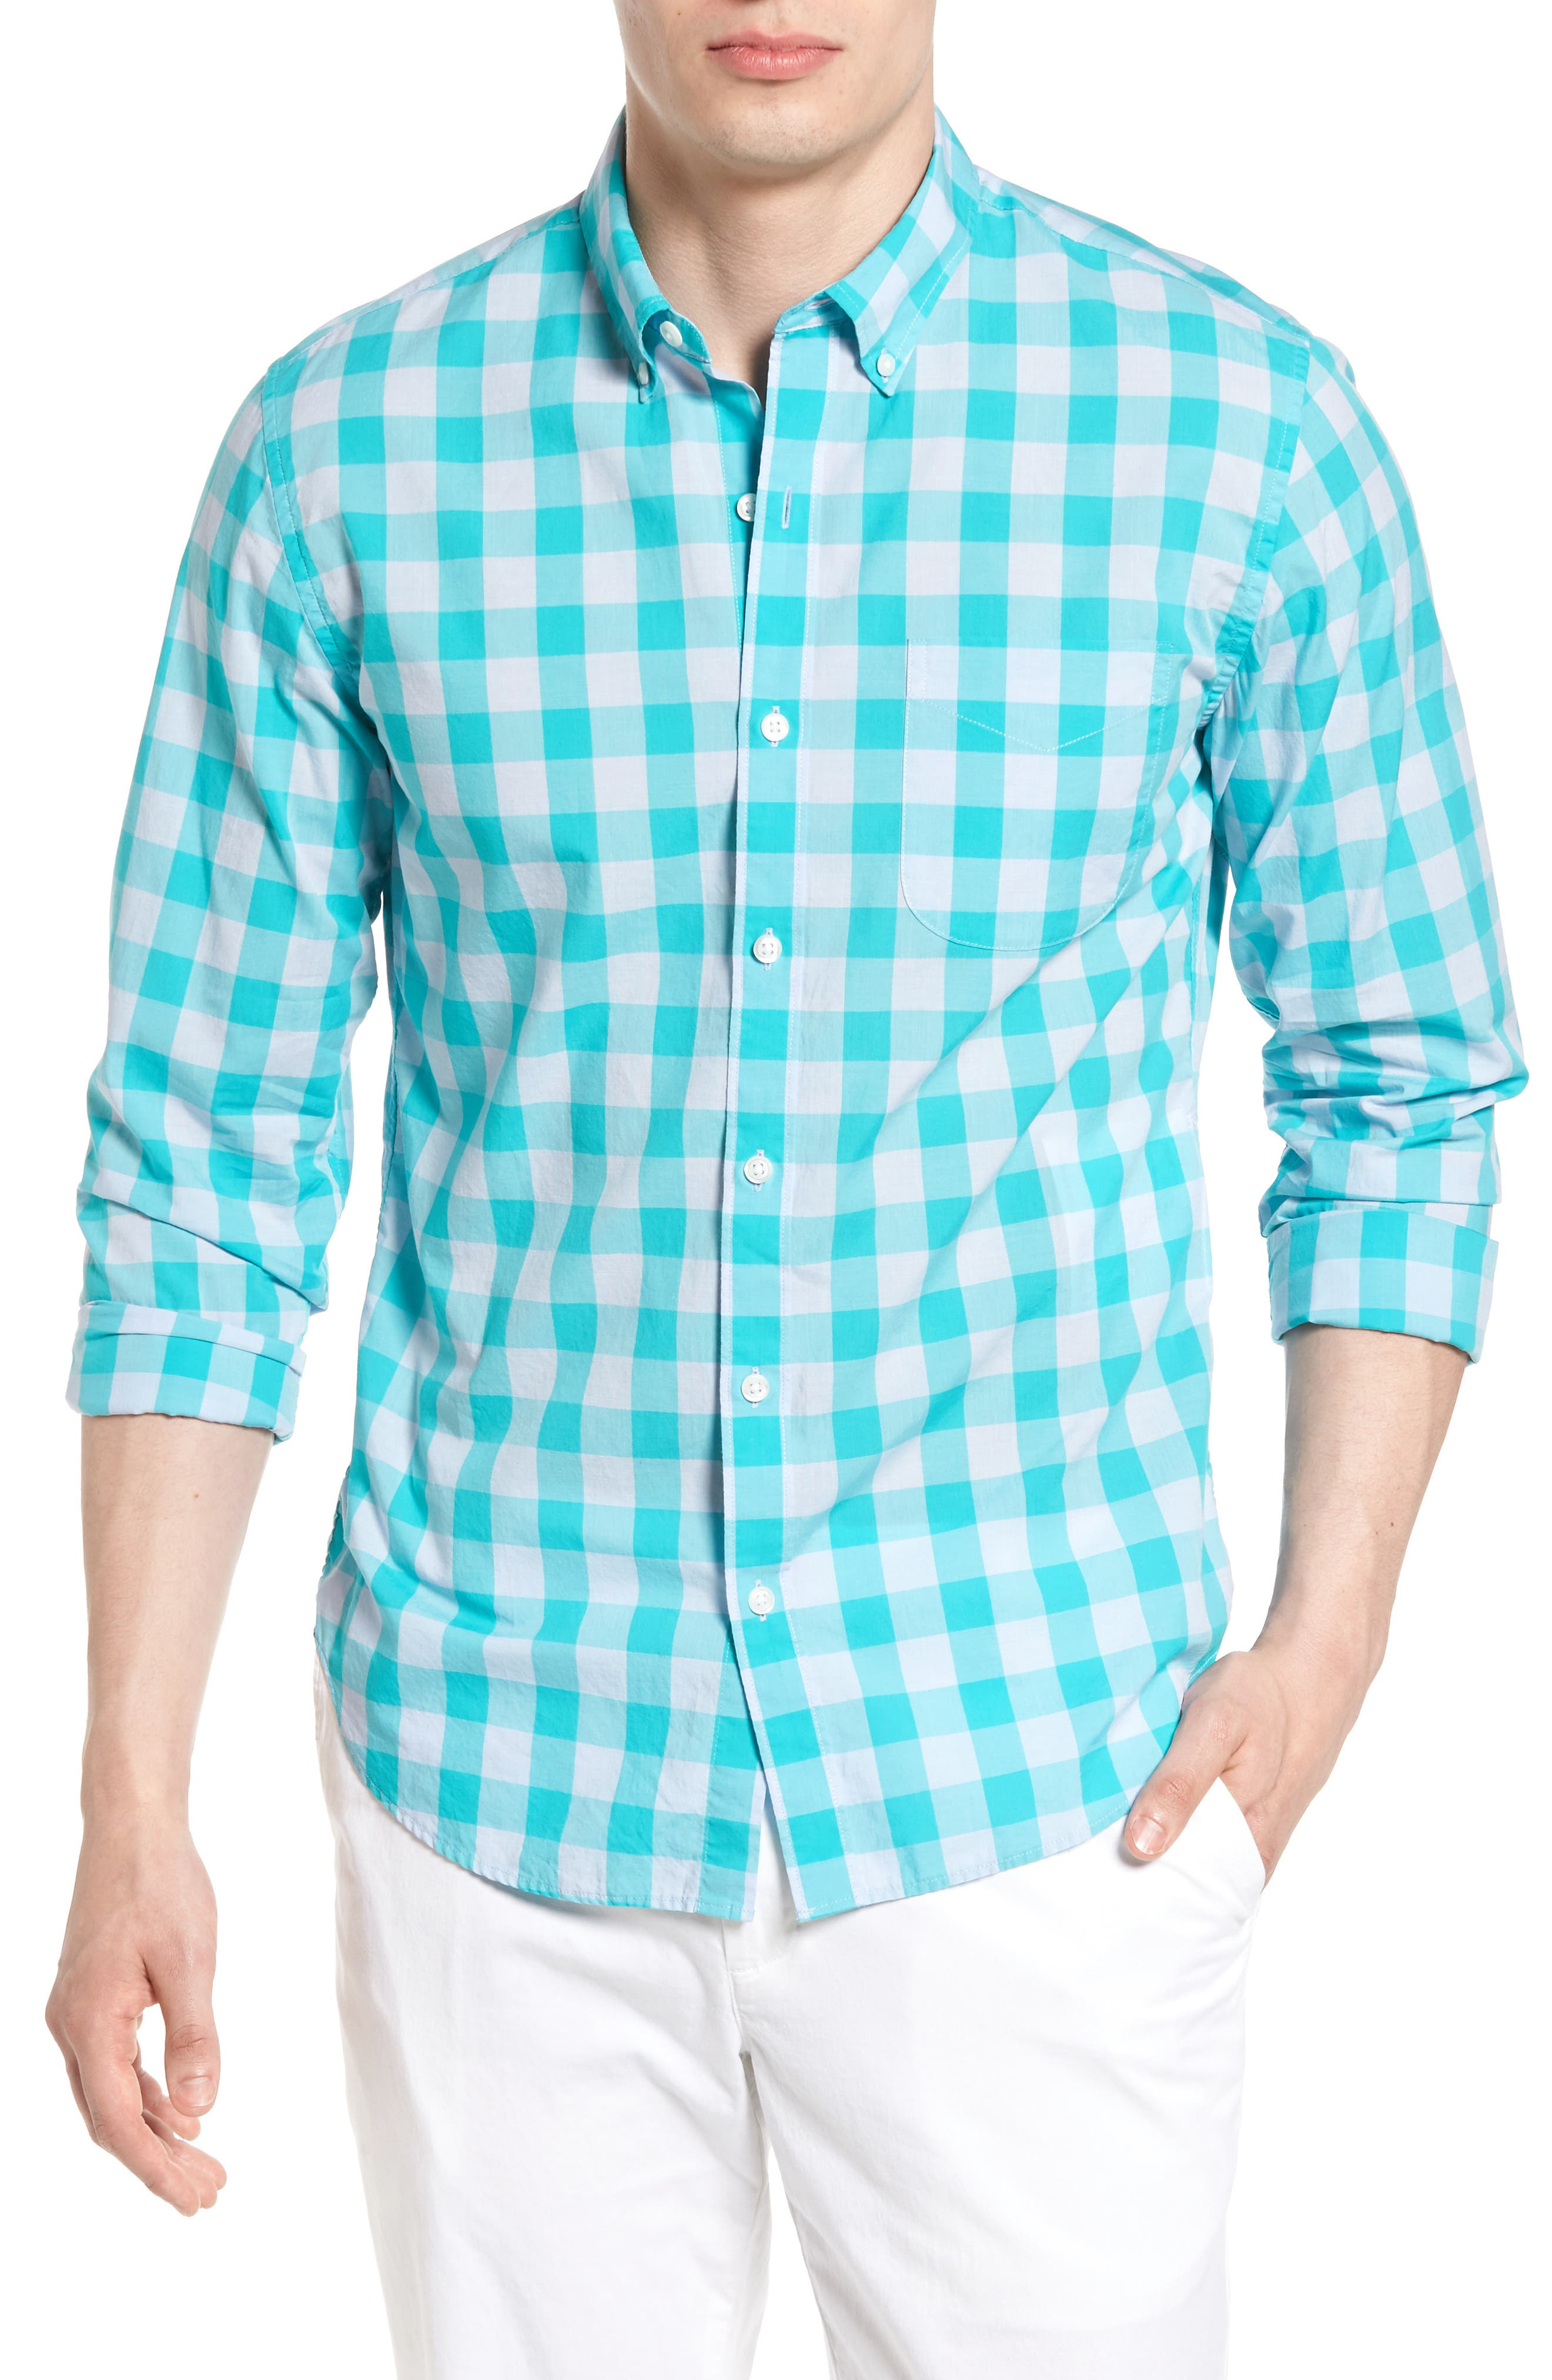 Alternate Image 1 Selected - Bonobos Slim Fit Summerweight Check Sport Shirt